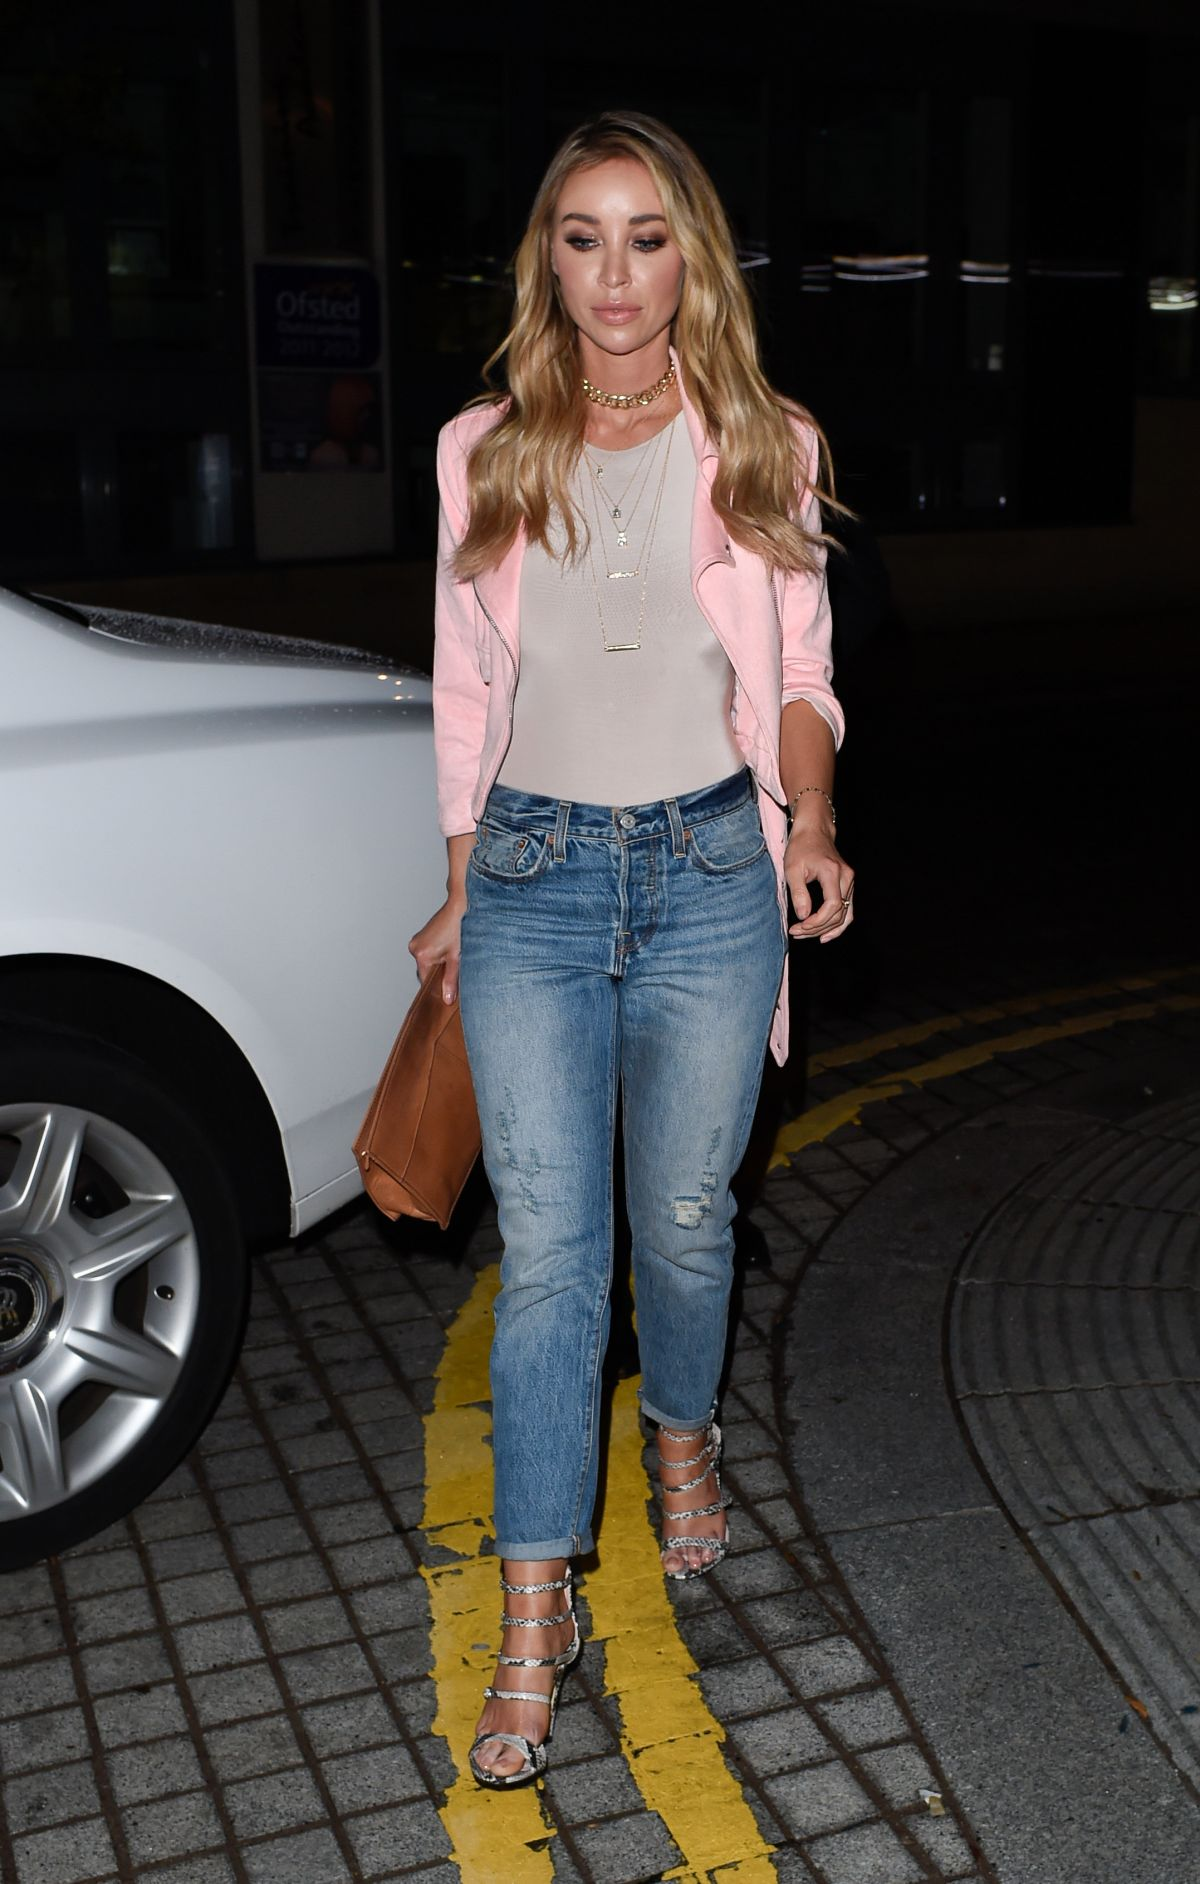 LAUREN POPE at Geisha Nightclub in Birmingham 04/30/2016